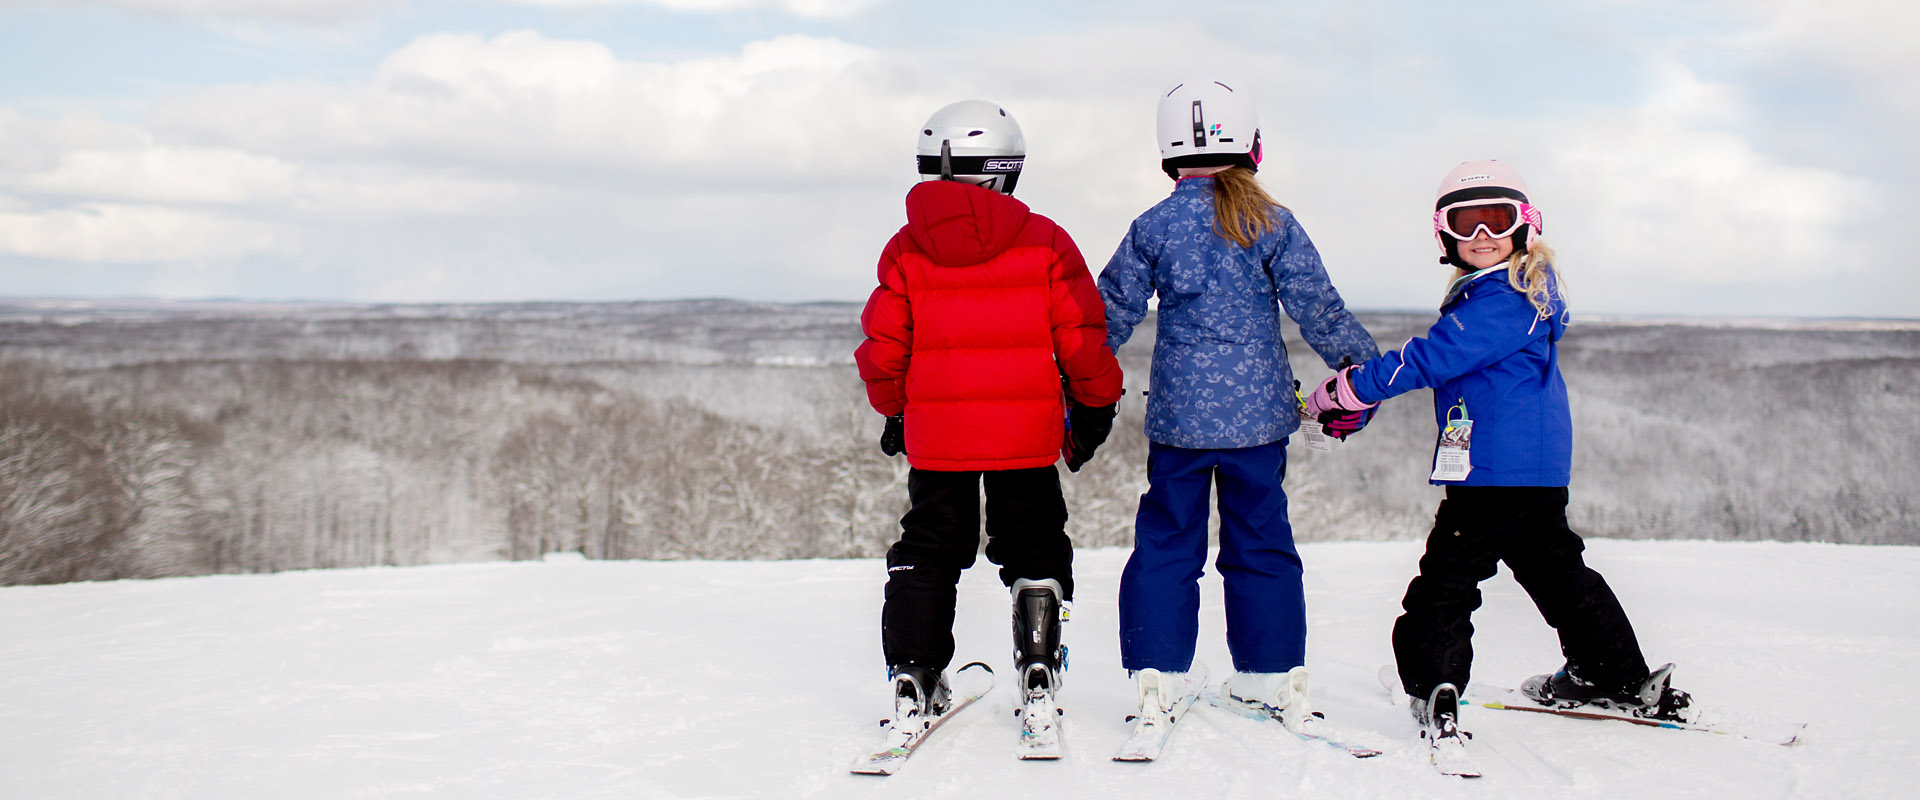 MSIA Michigan Snowsports Ski Resort Michigan